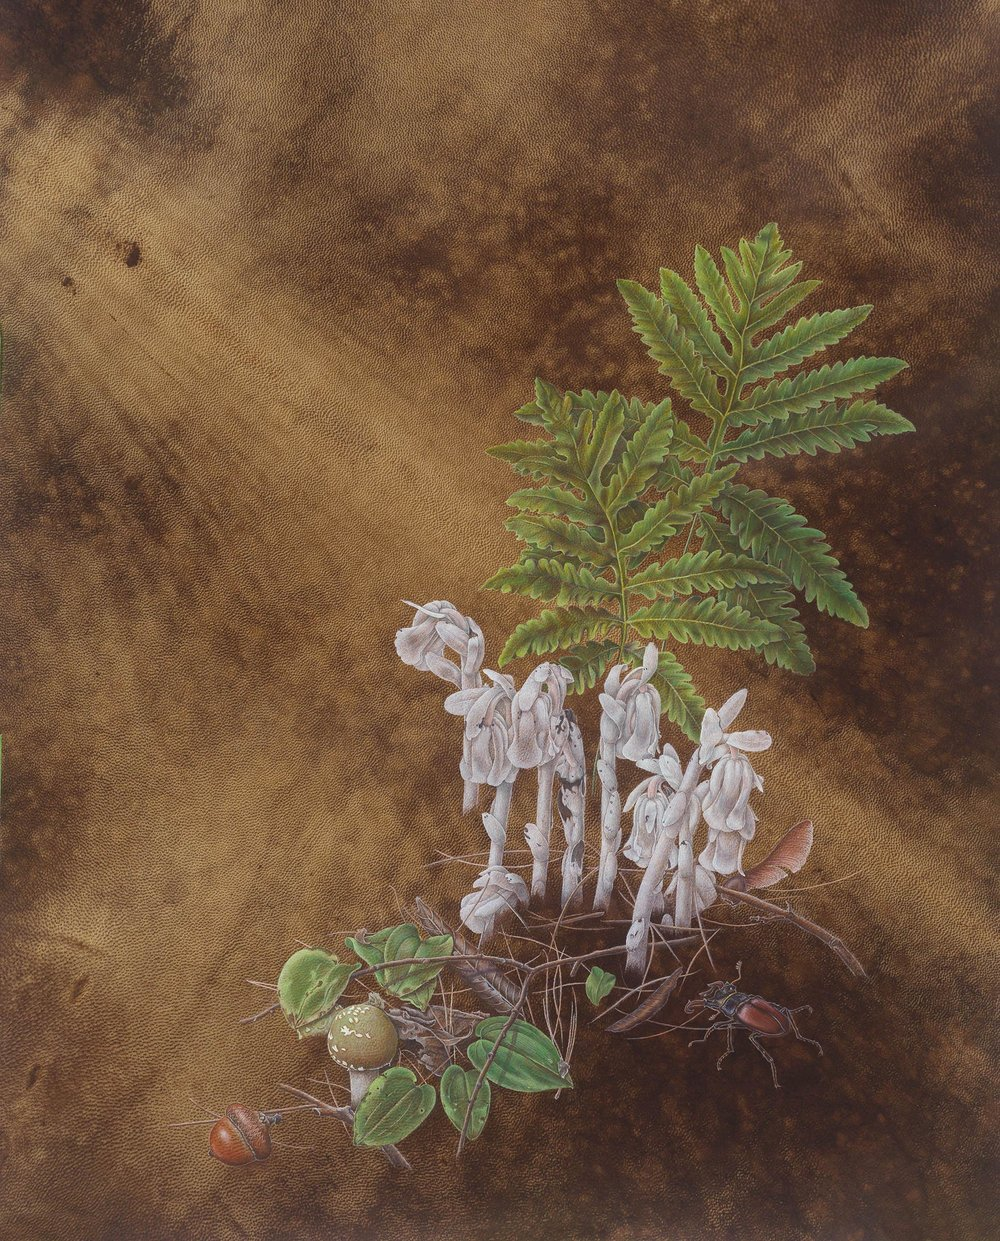 """""""Indian Pipes"""", watercolor on dyed goatskin, 16 3/4"""" x 11 3/4"""", (image size) $2,400 (framed)"""